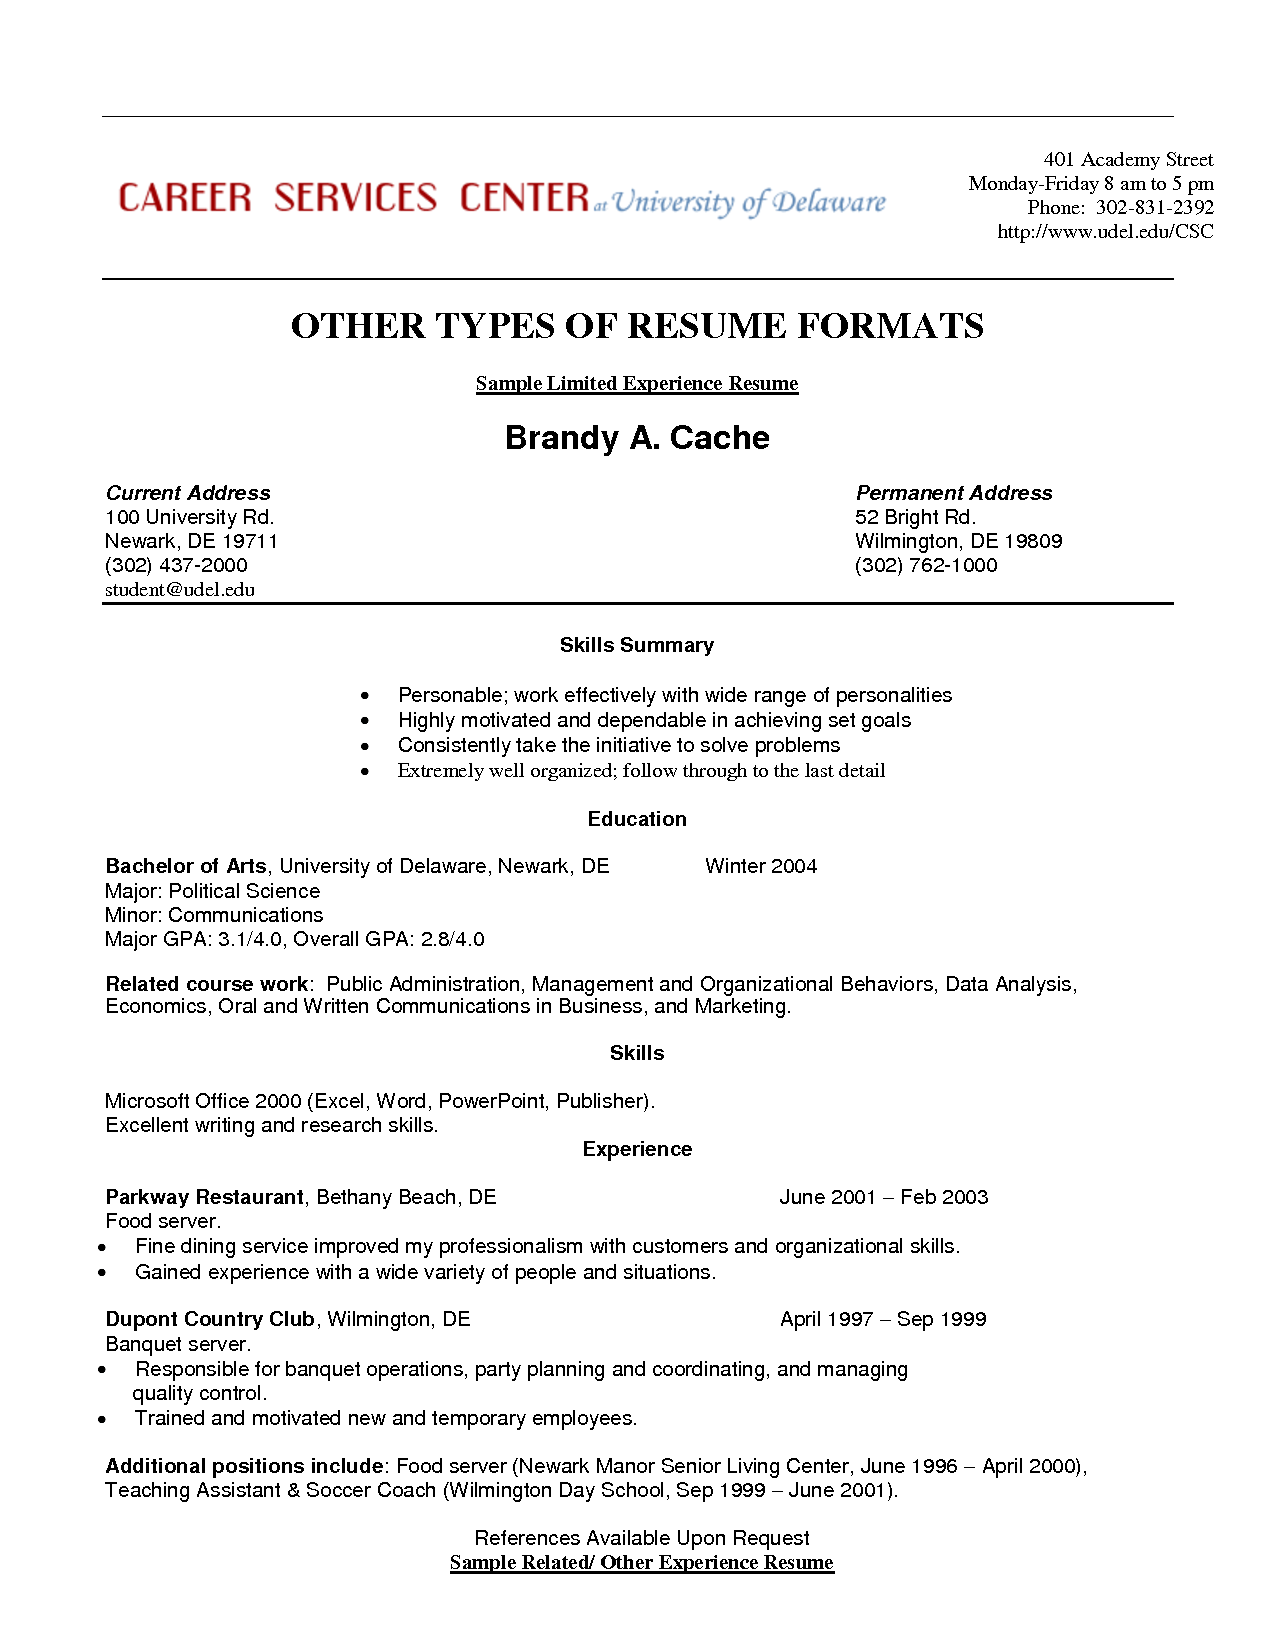 Resume Templates Limited Work Experience ResumeTemplates